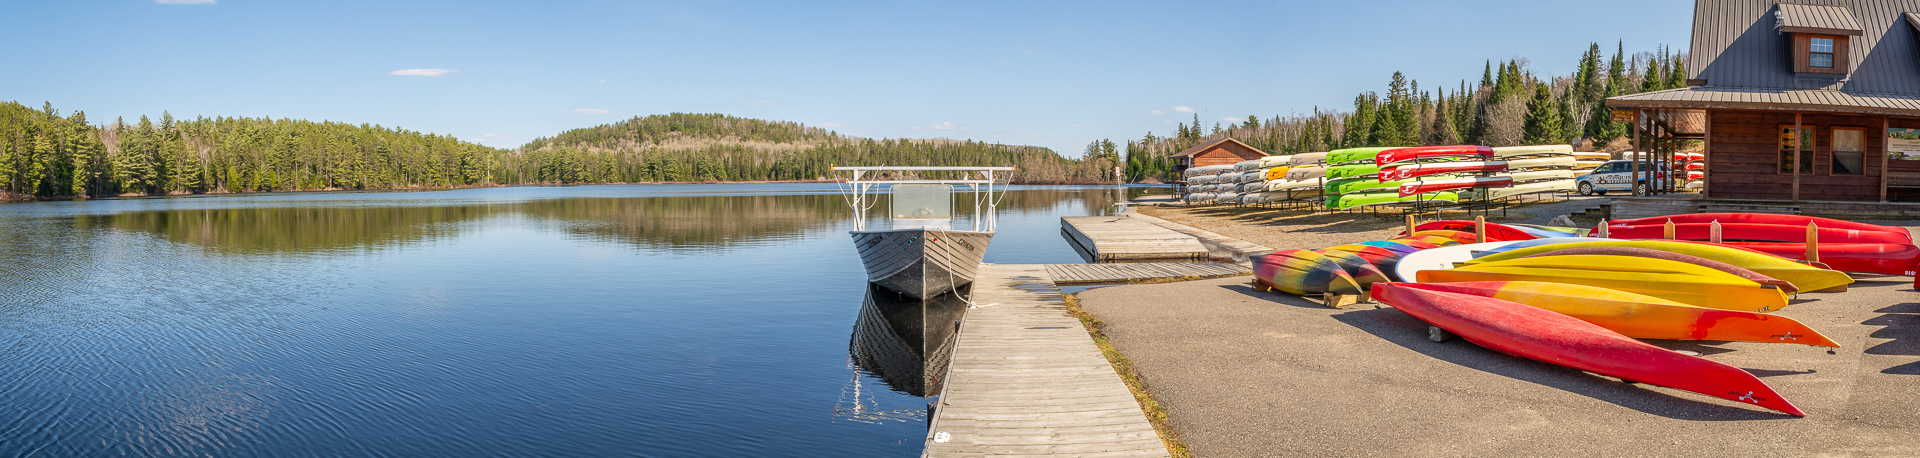 Lake Opeongo, Algonquin Outfitters Water Taxi